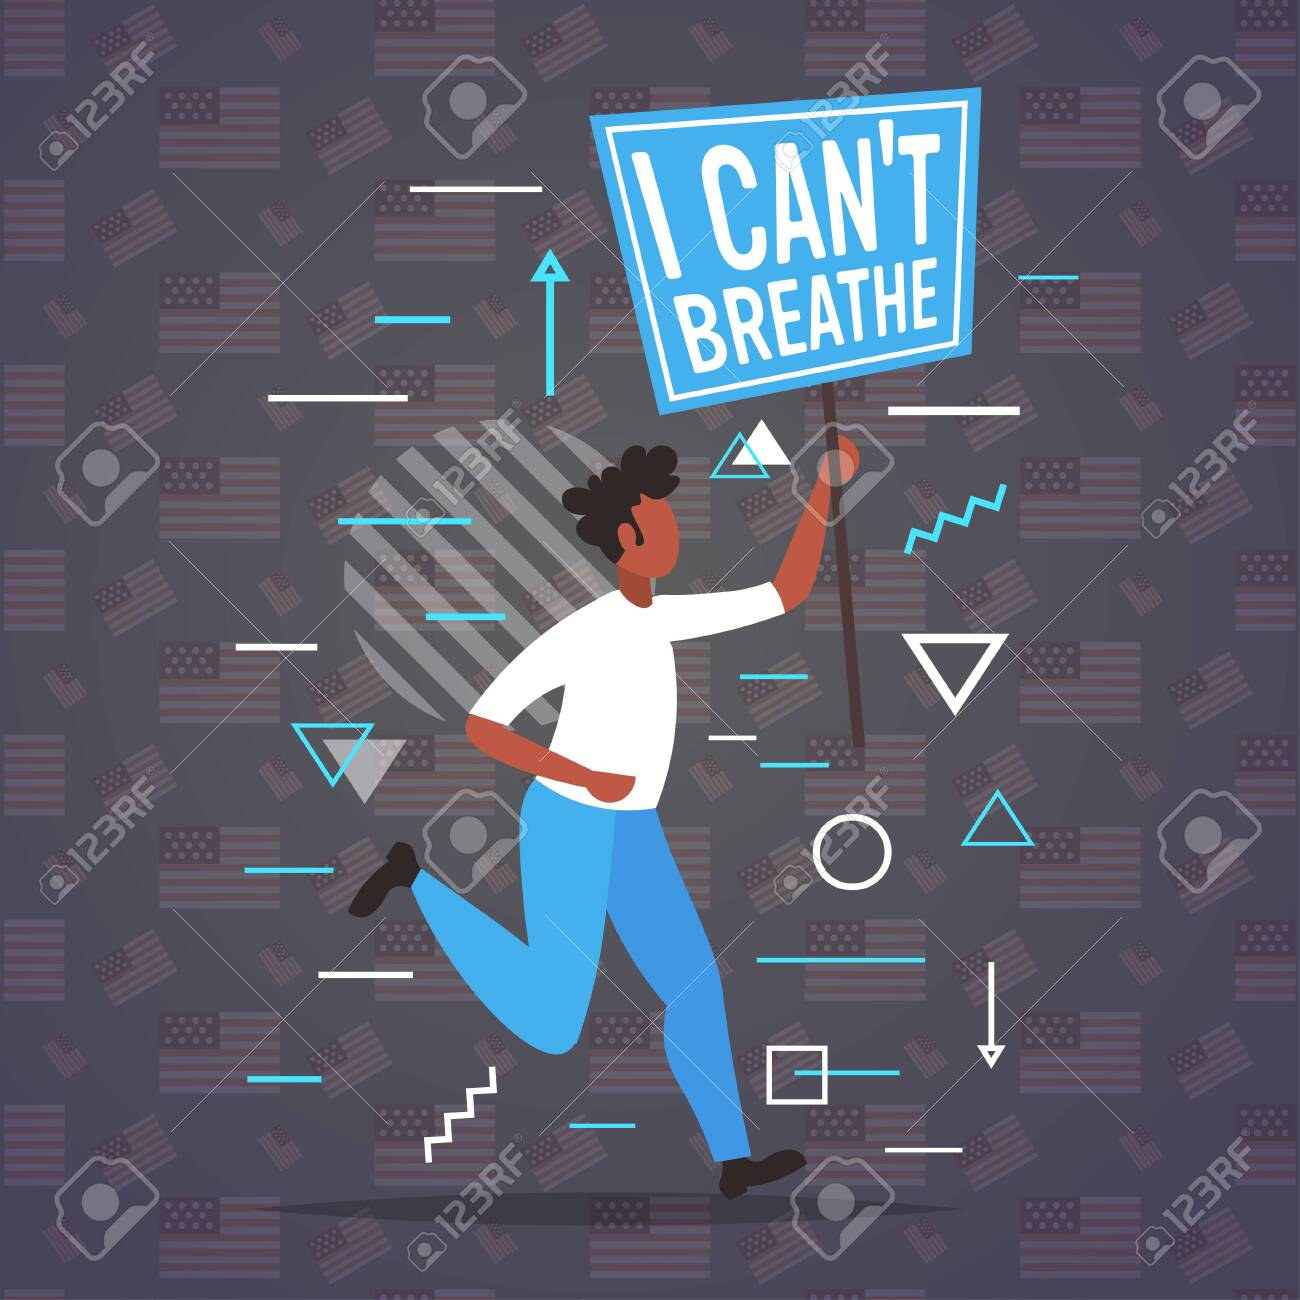 african american man holding i cant breathe banner black lives matter campaign against racial discrimination of dark skin color support for equal rights of black people full length vector illustration - 149310648